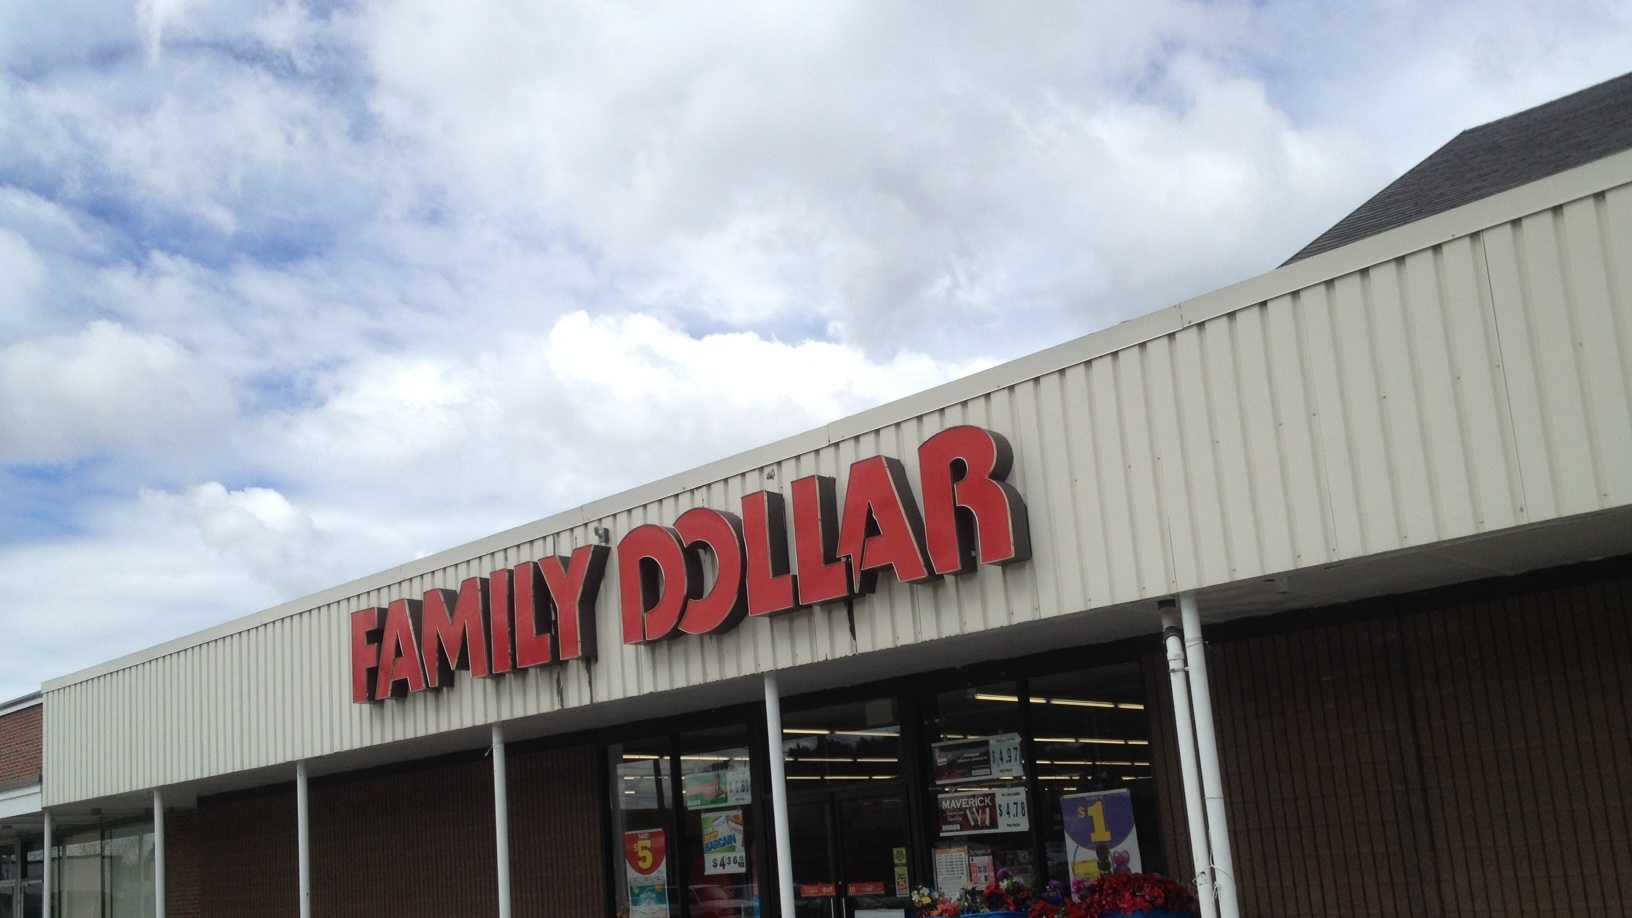 Family Dollar Store in Lebanon